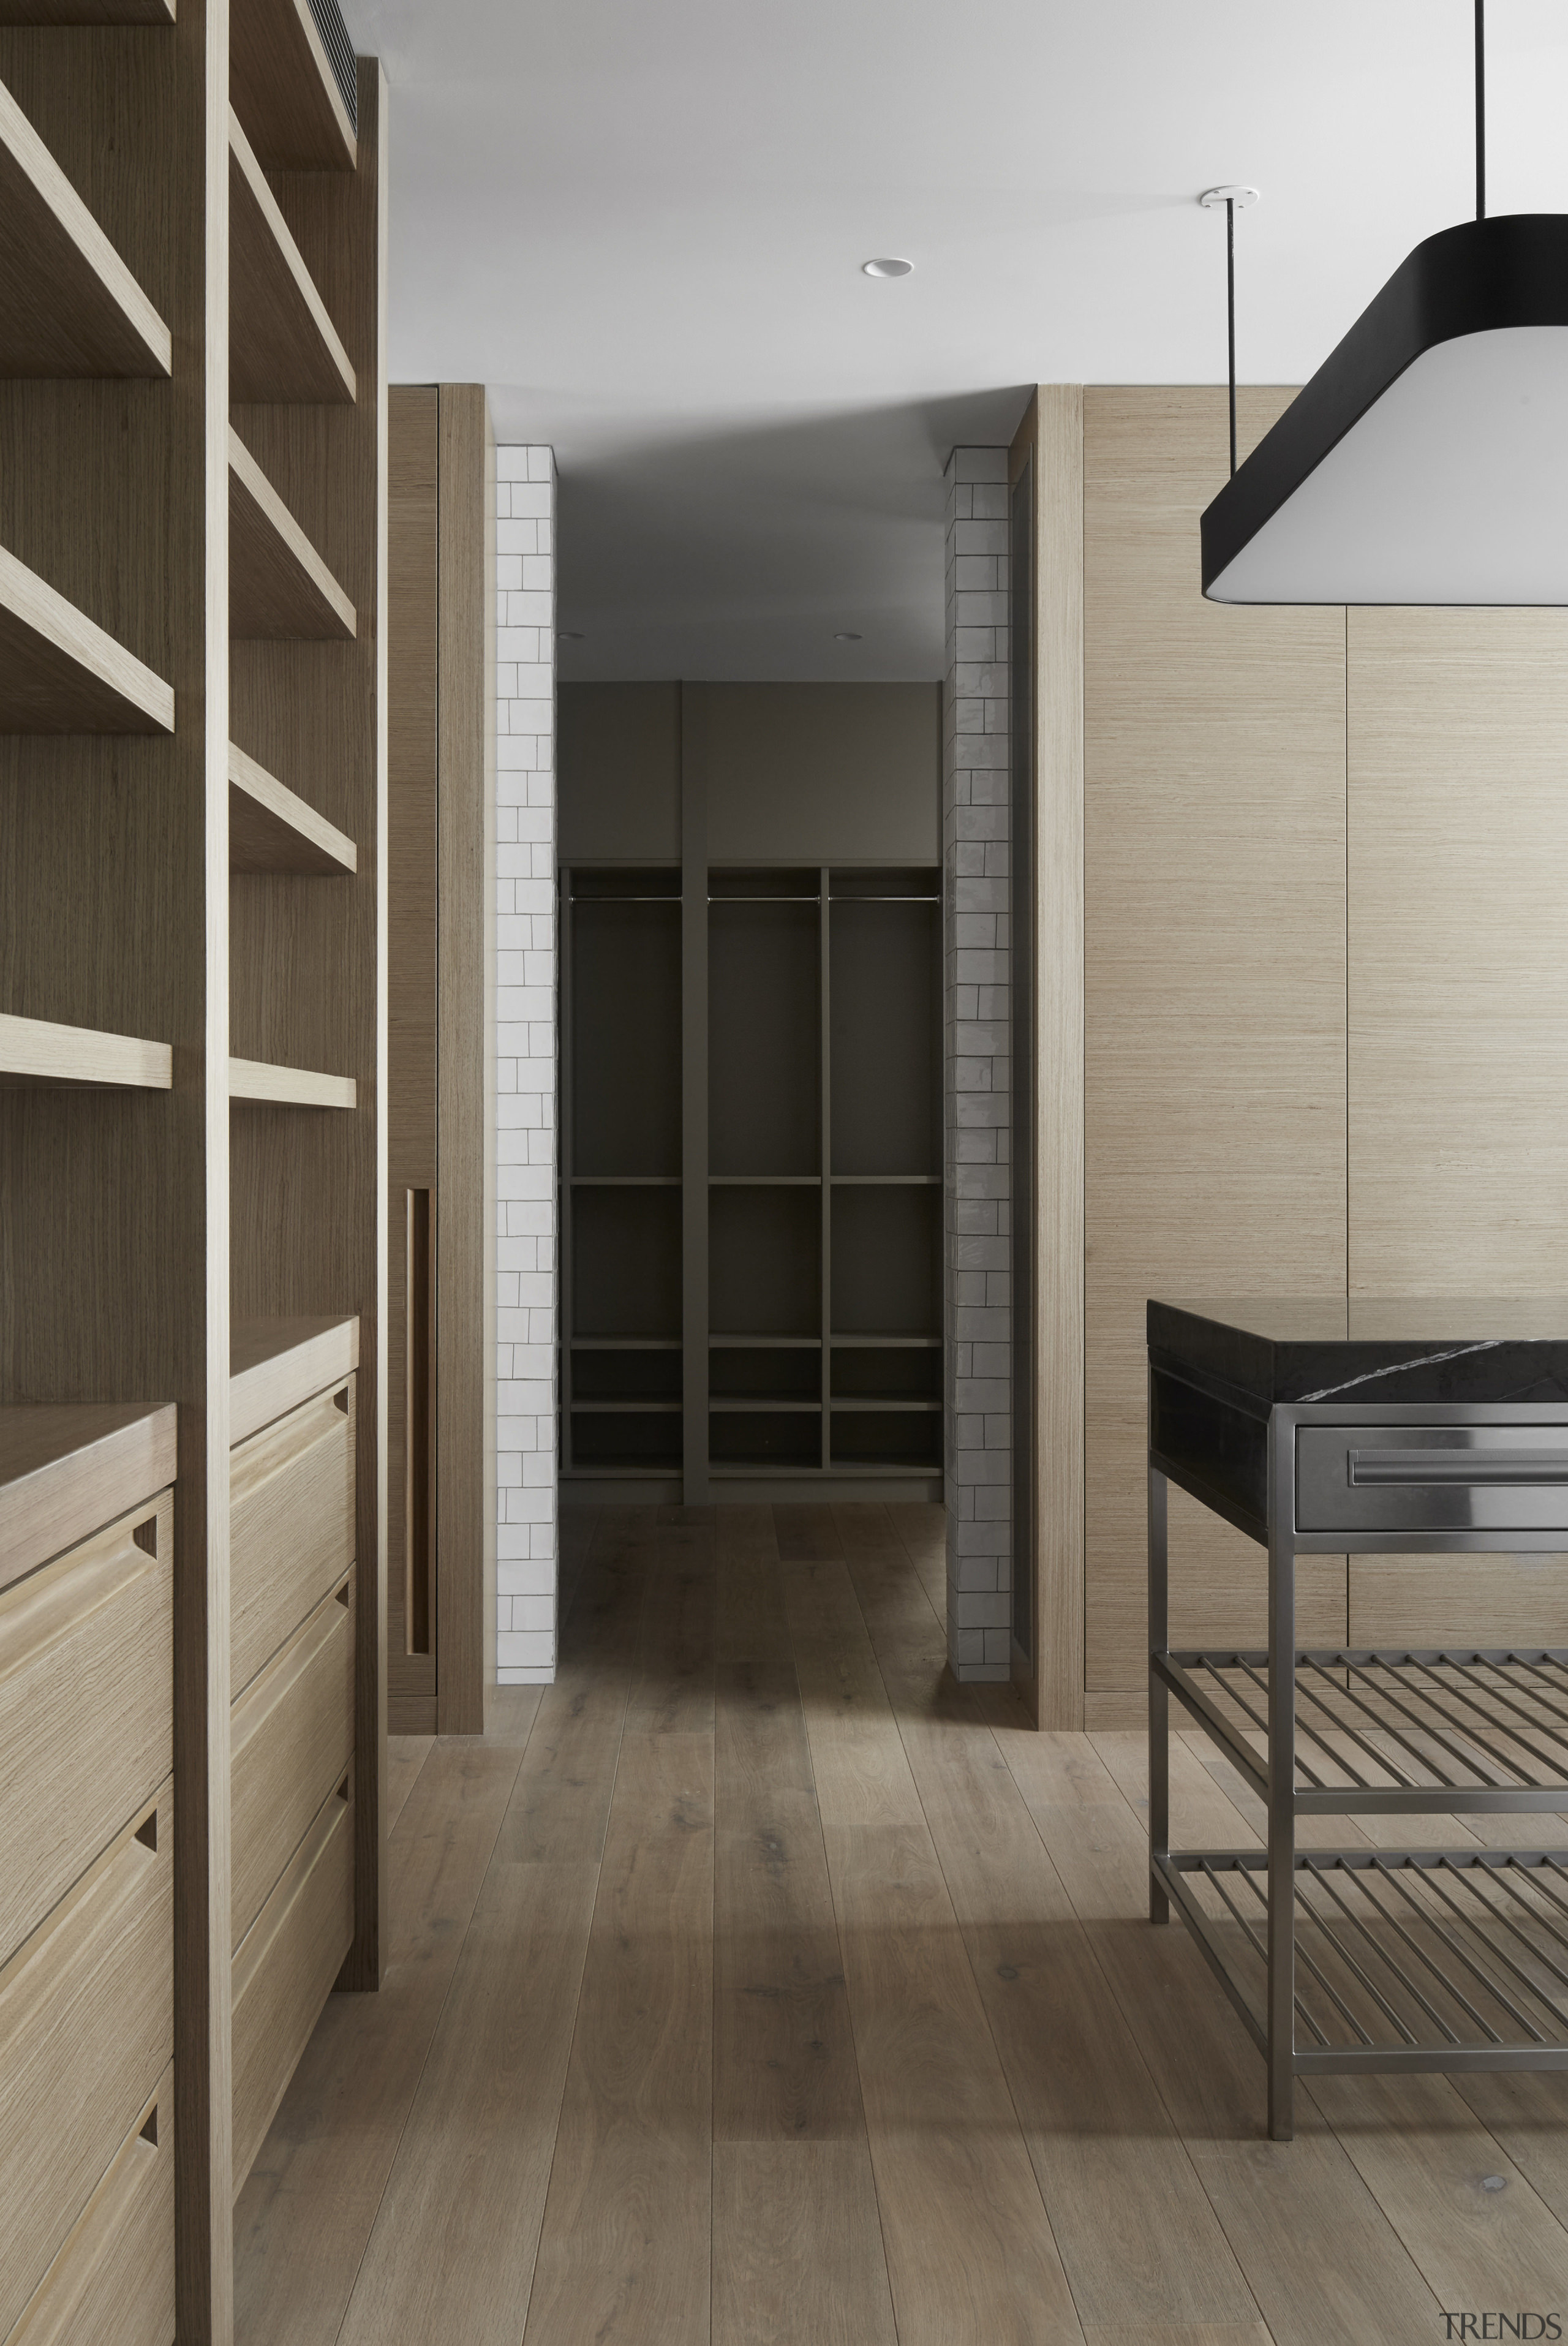 This kitchen pantry, its adjoining kitchen, and ancillary architecture, cabinetry, floor, flooring, interior design, laminate flooring, wood, wood flooring, gray, brown